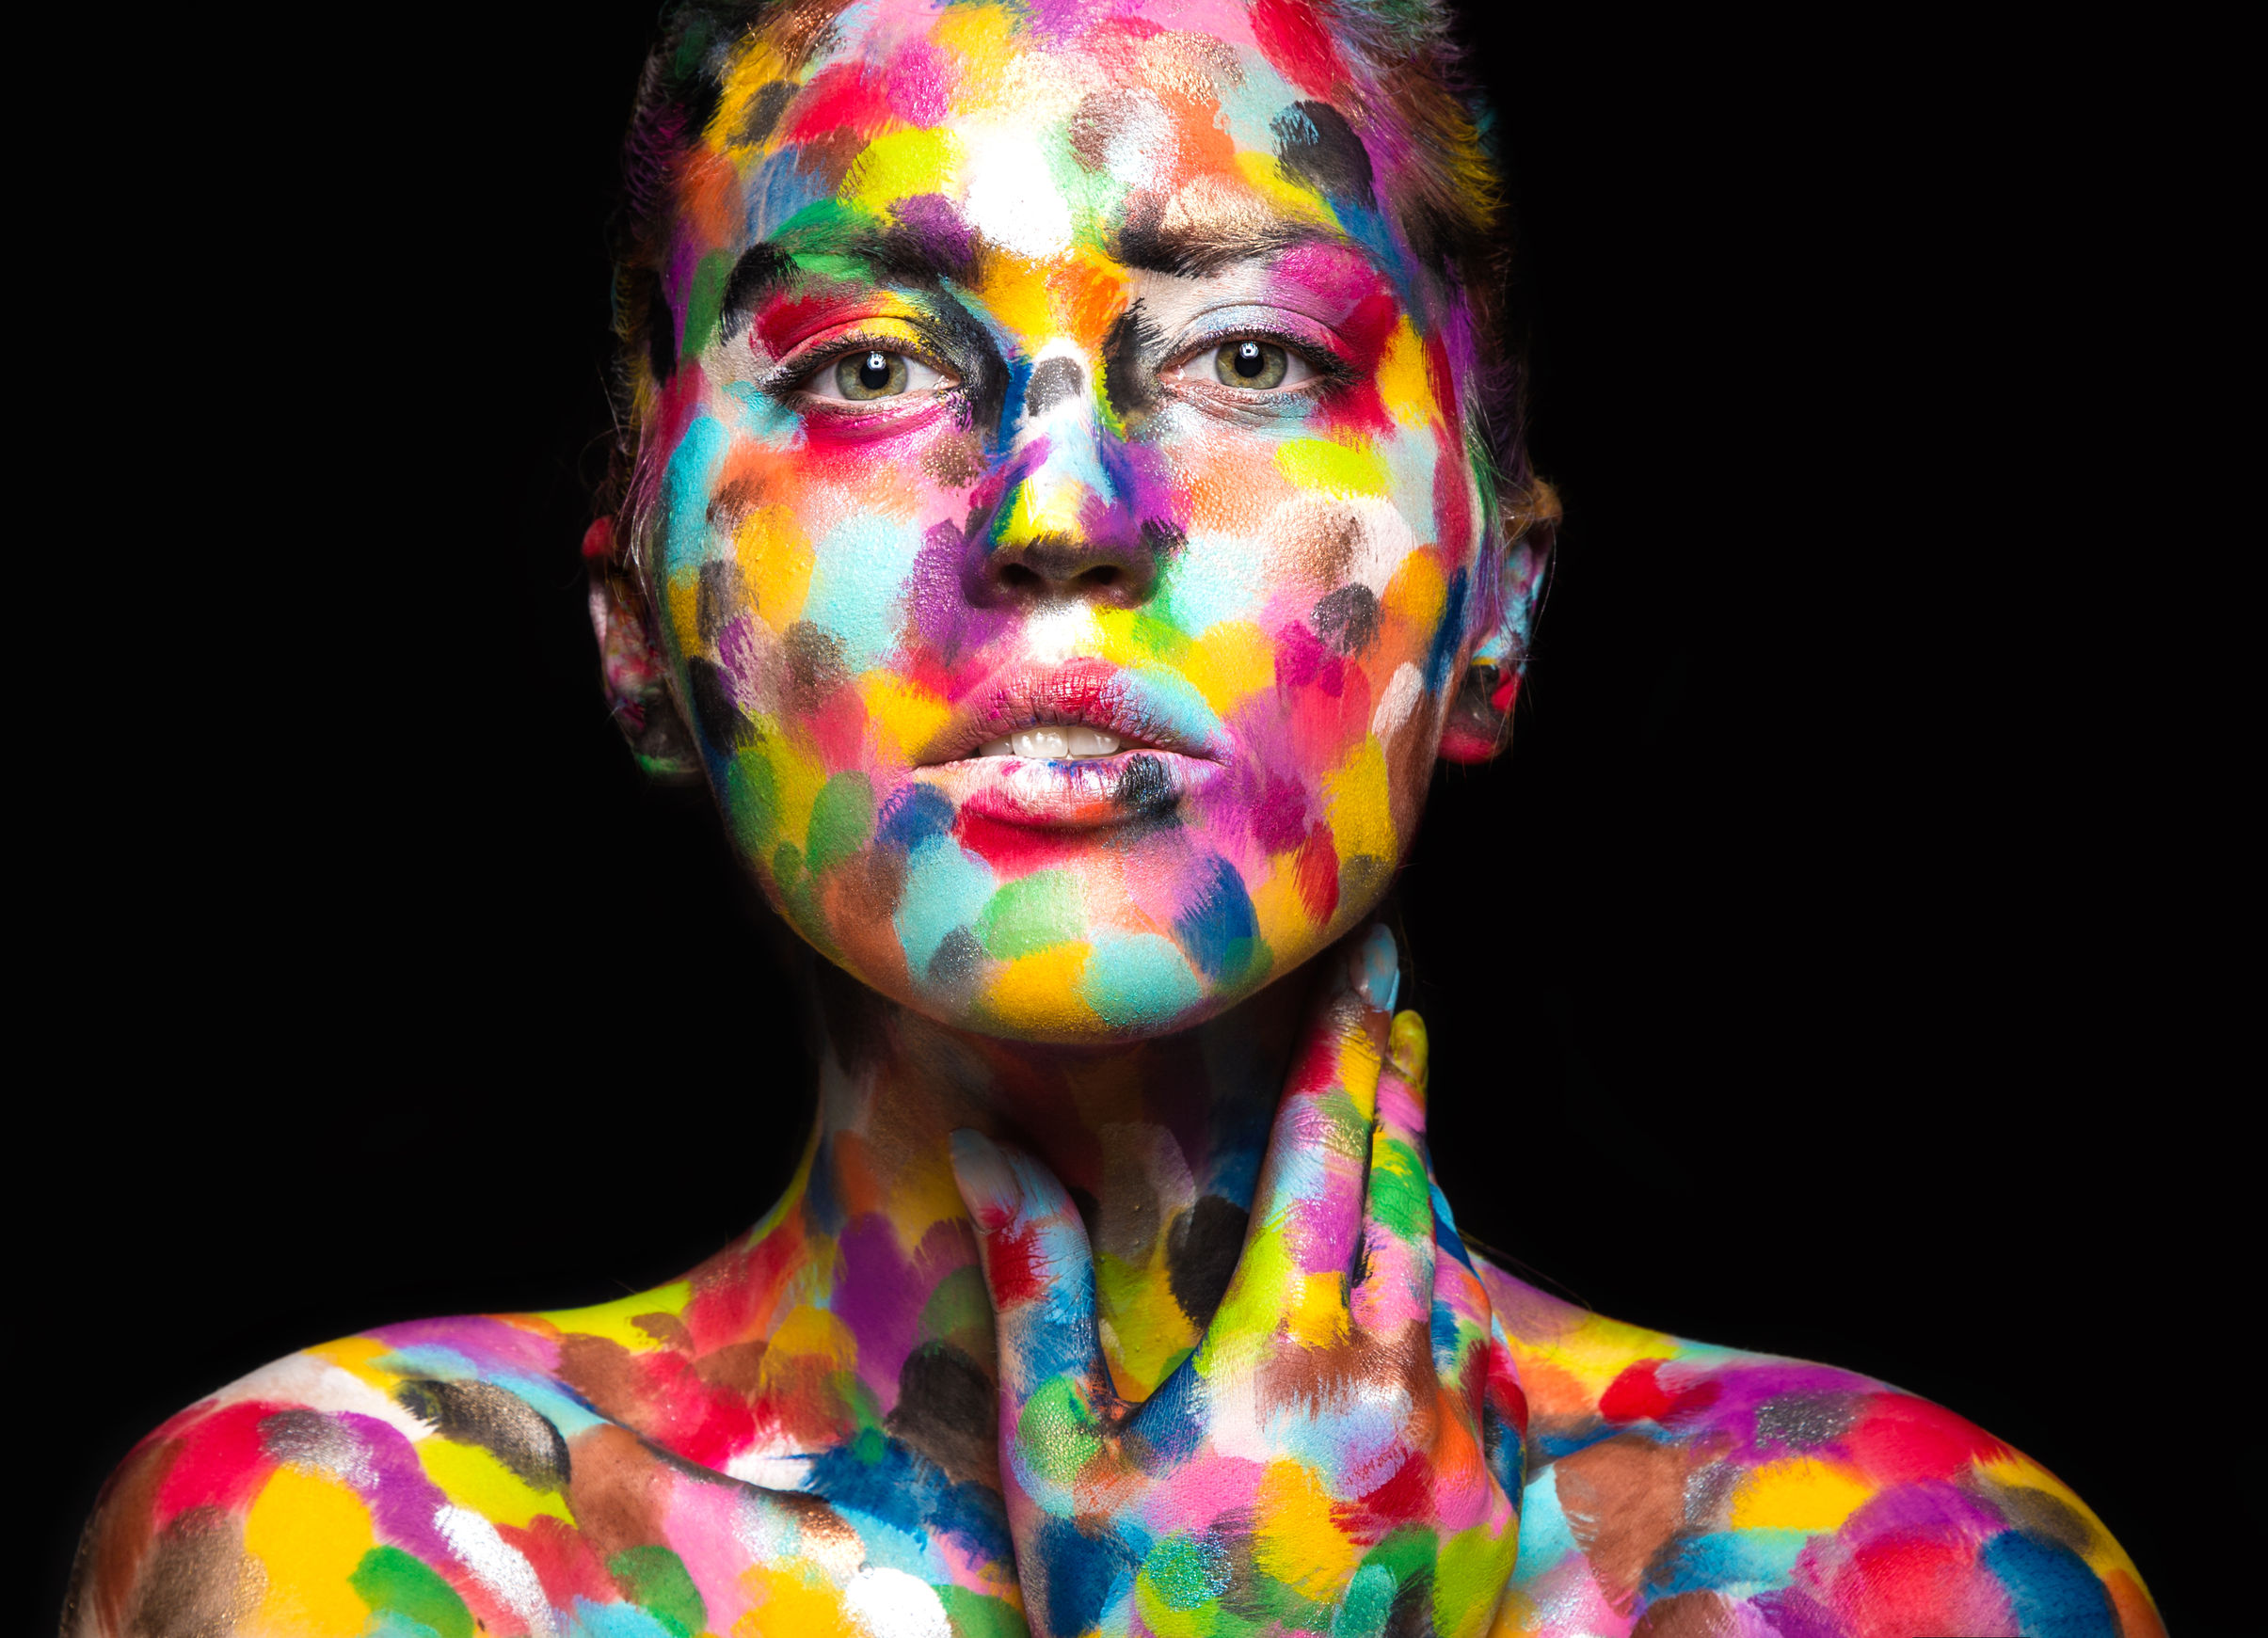 43728650 - girl with colored face painted. art beauty image. picture taken in the studio on a black background.